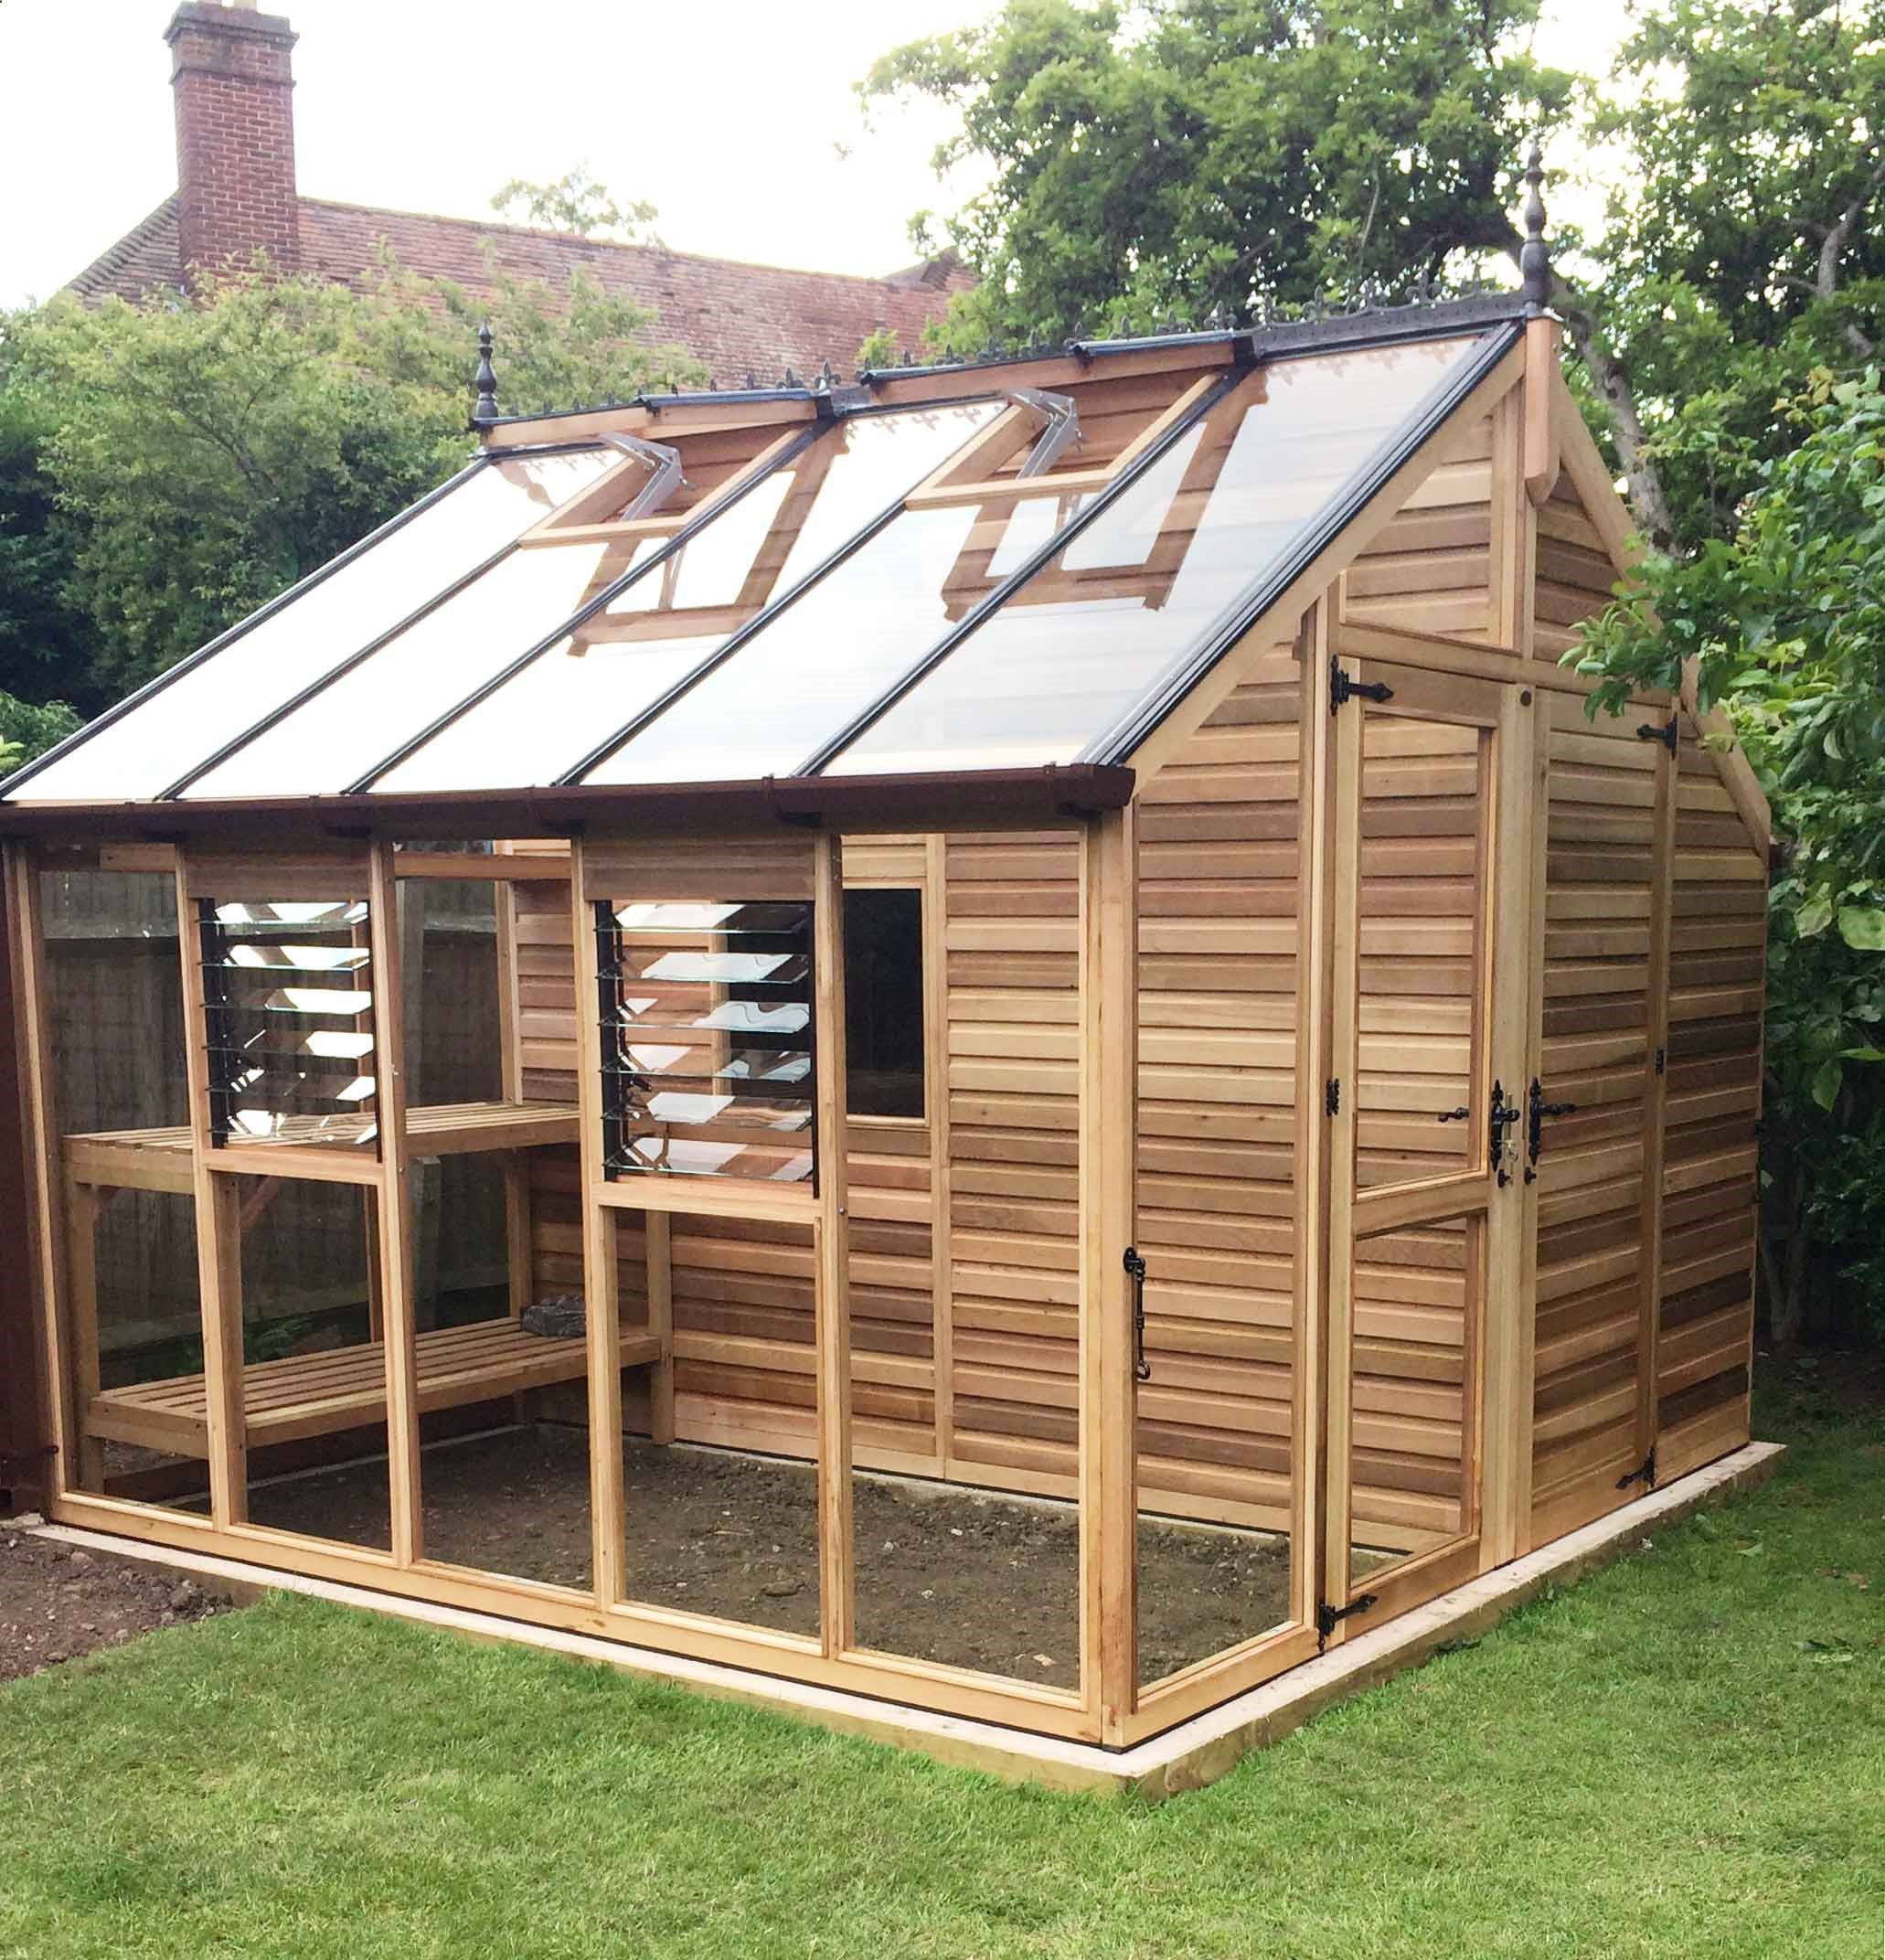 Shed Plans - Cedar Centaur Shed Greenhouse Combo 33x33 Now You Can